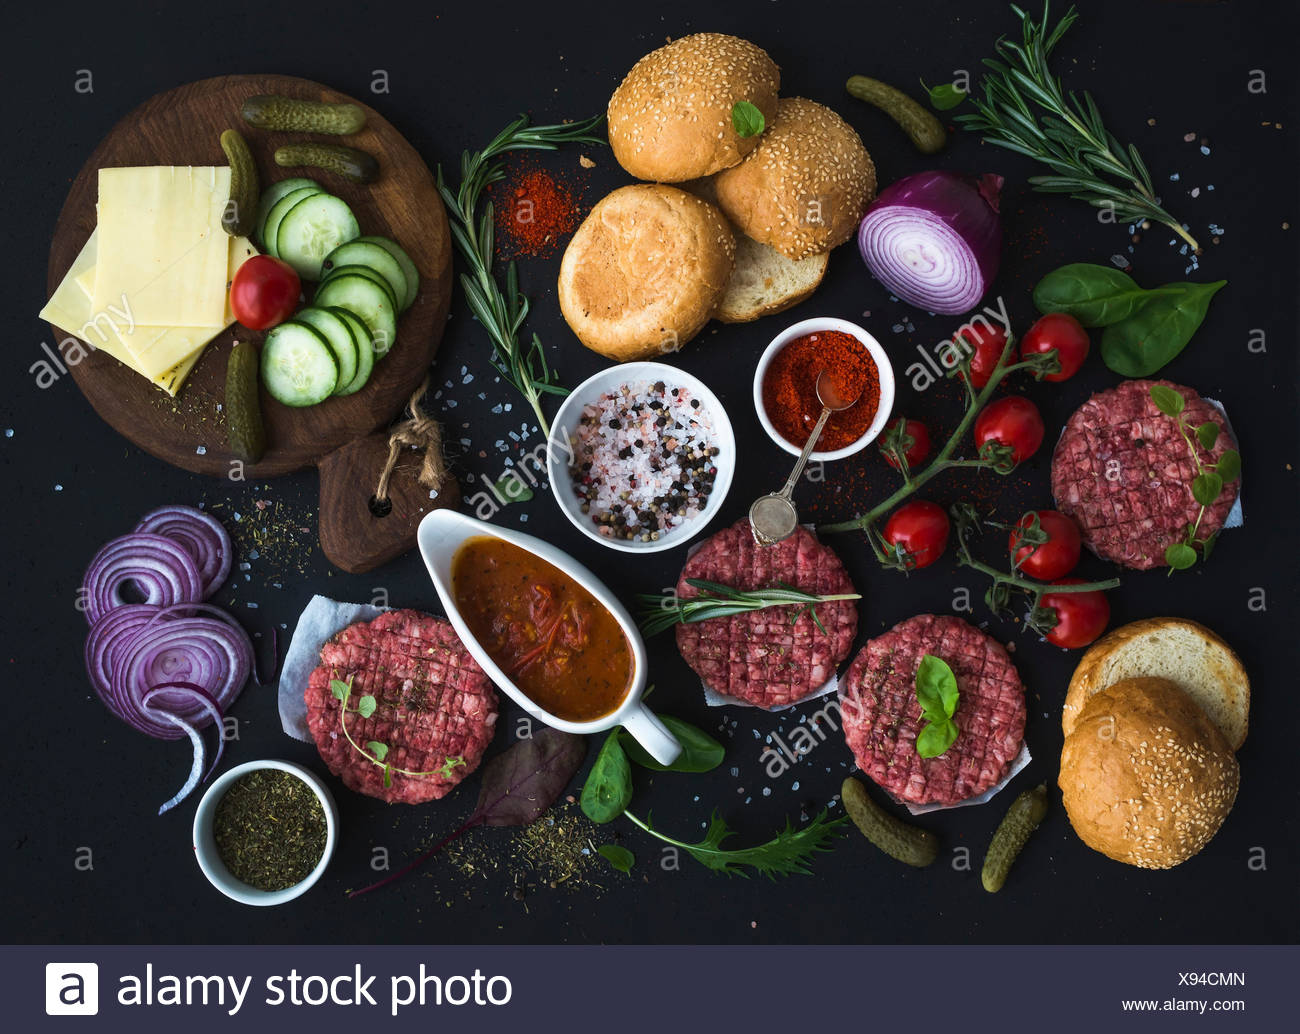 Ingredients for cooking burgers. Raw ground beef meat cutlets, buns, red onion, cherry tomatoes, greens, pickles, tomato sauce, - Stock Image